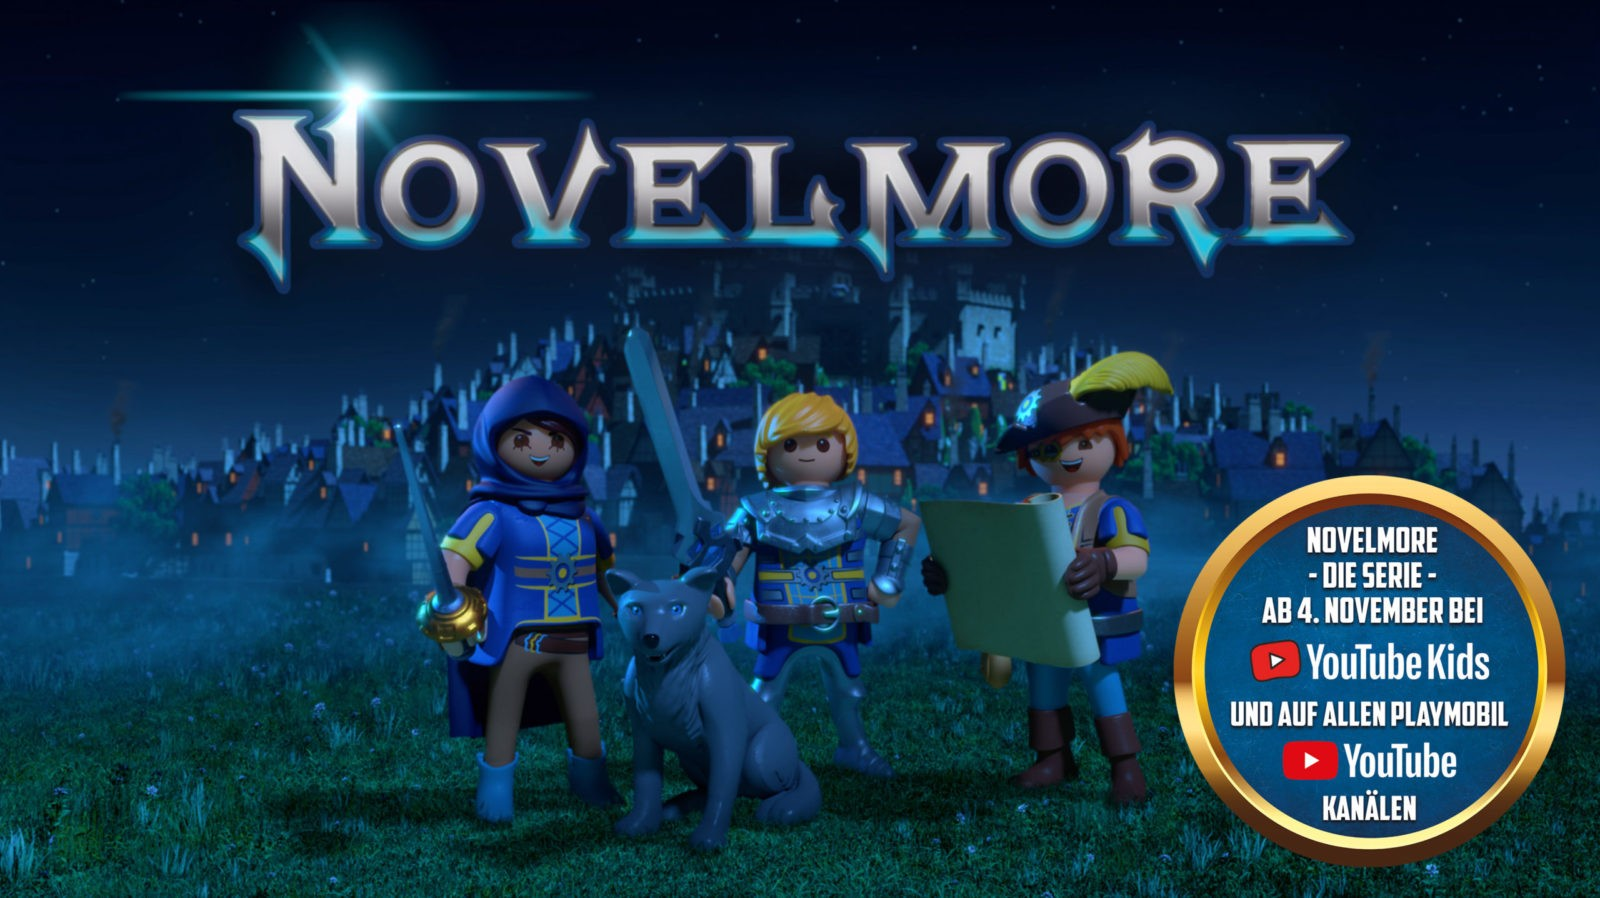 Playmobil Novelmore auf YouTube Kids